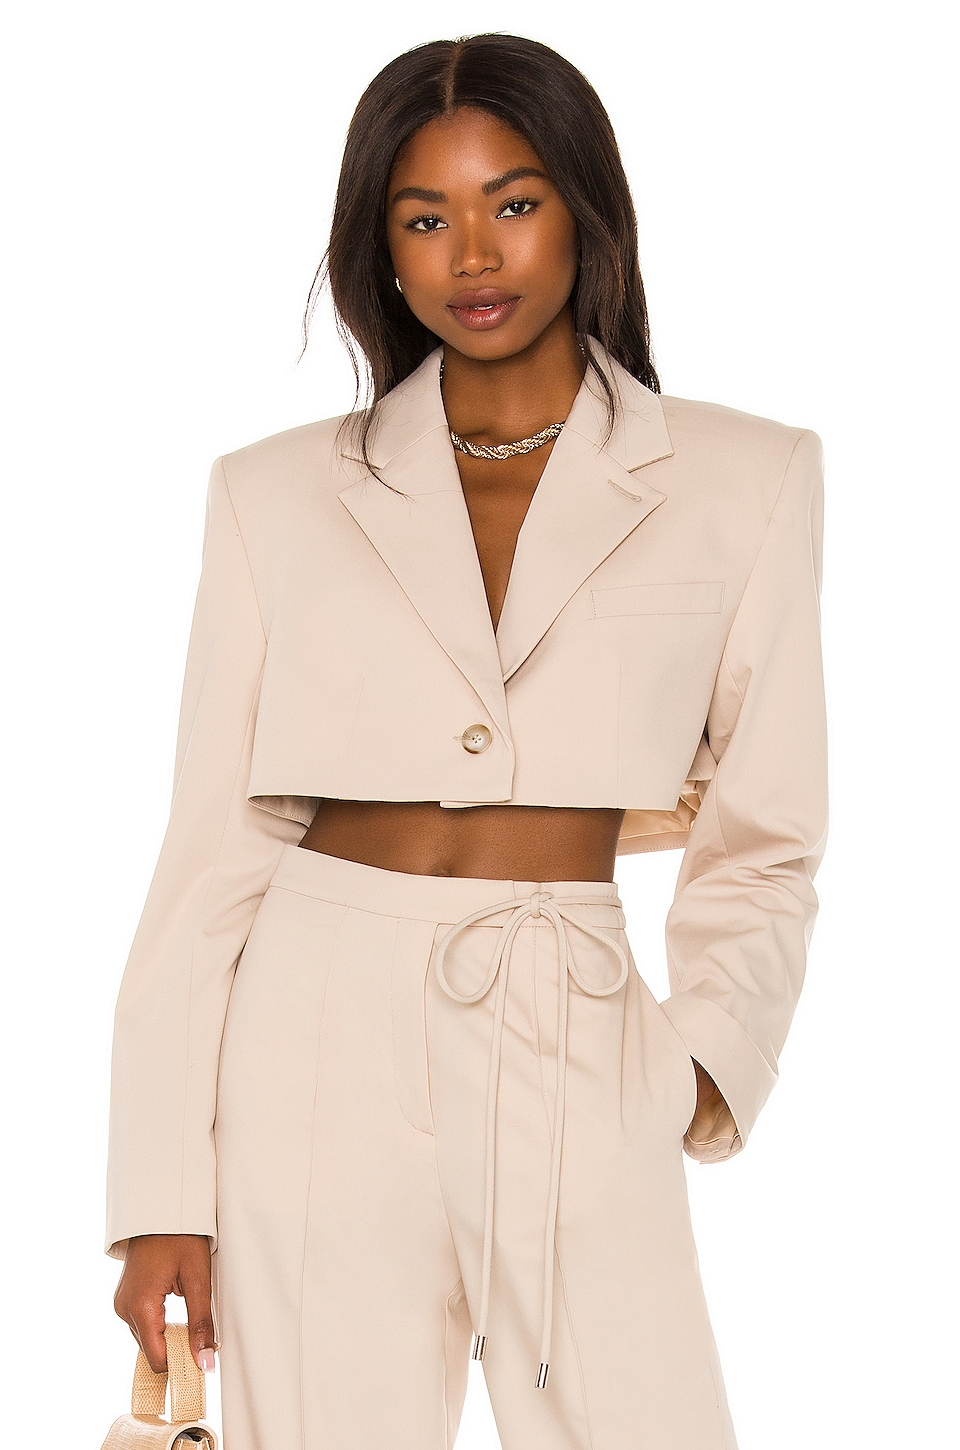 Serafina Cropped Blazer by LAcademie, available on revolve.com for $298 Elsa Hosk Outerwear Exact Product